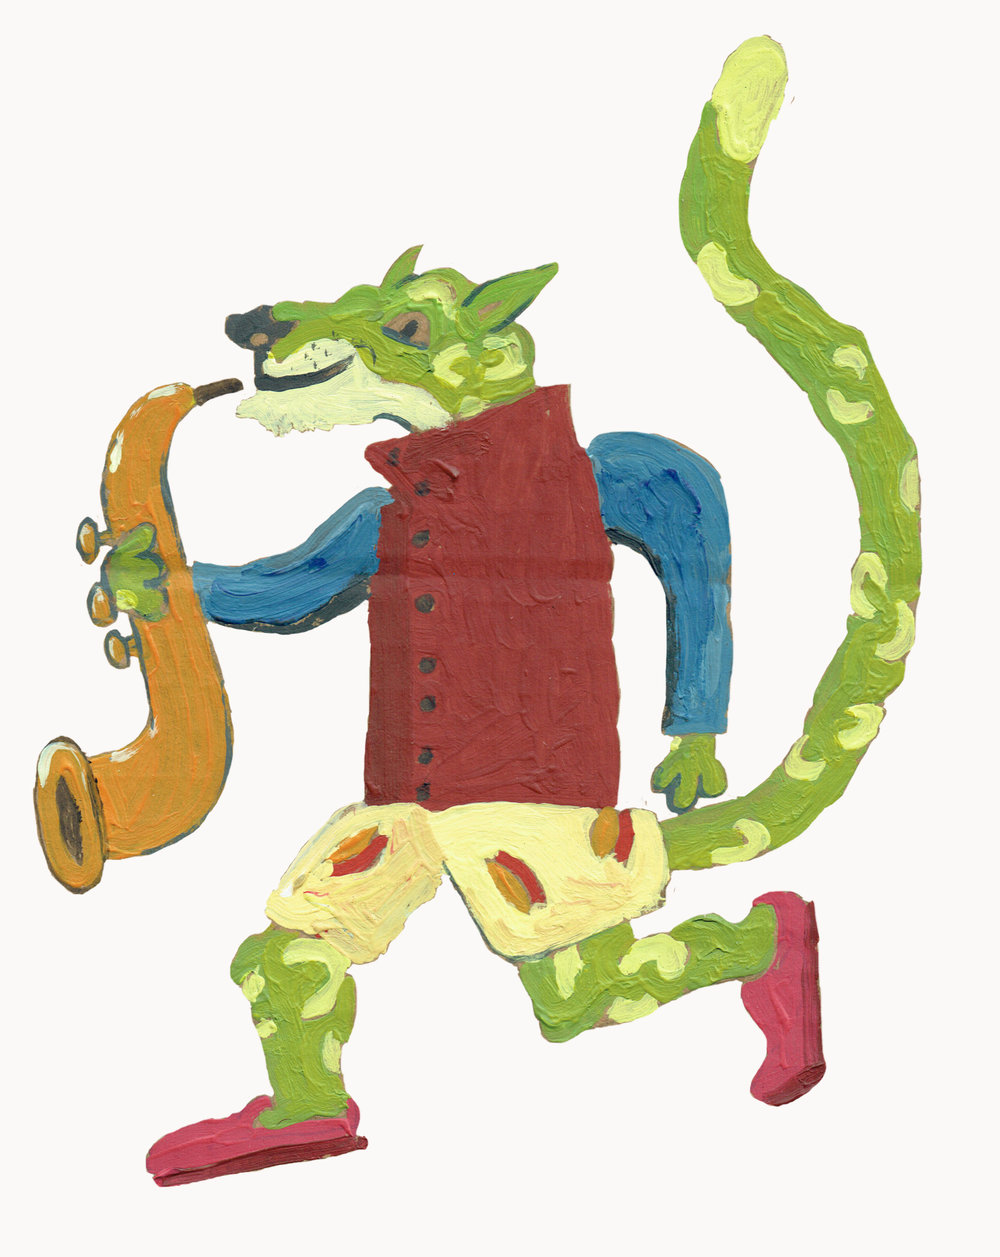 This one is actually dressed as me. I have the same shorts and red waistcoat. Also, when I painted this one I hesitated about using that lime green colour. But it turns out green fur suits jaguars.